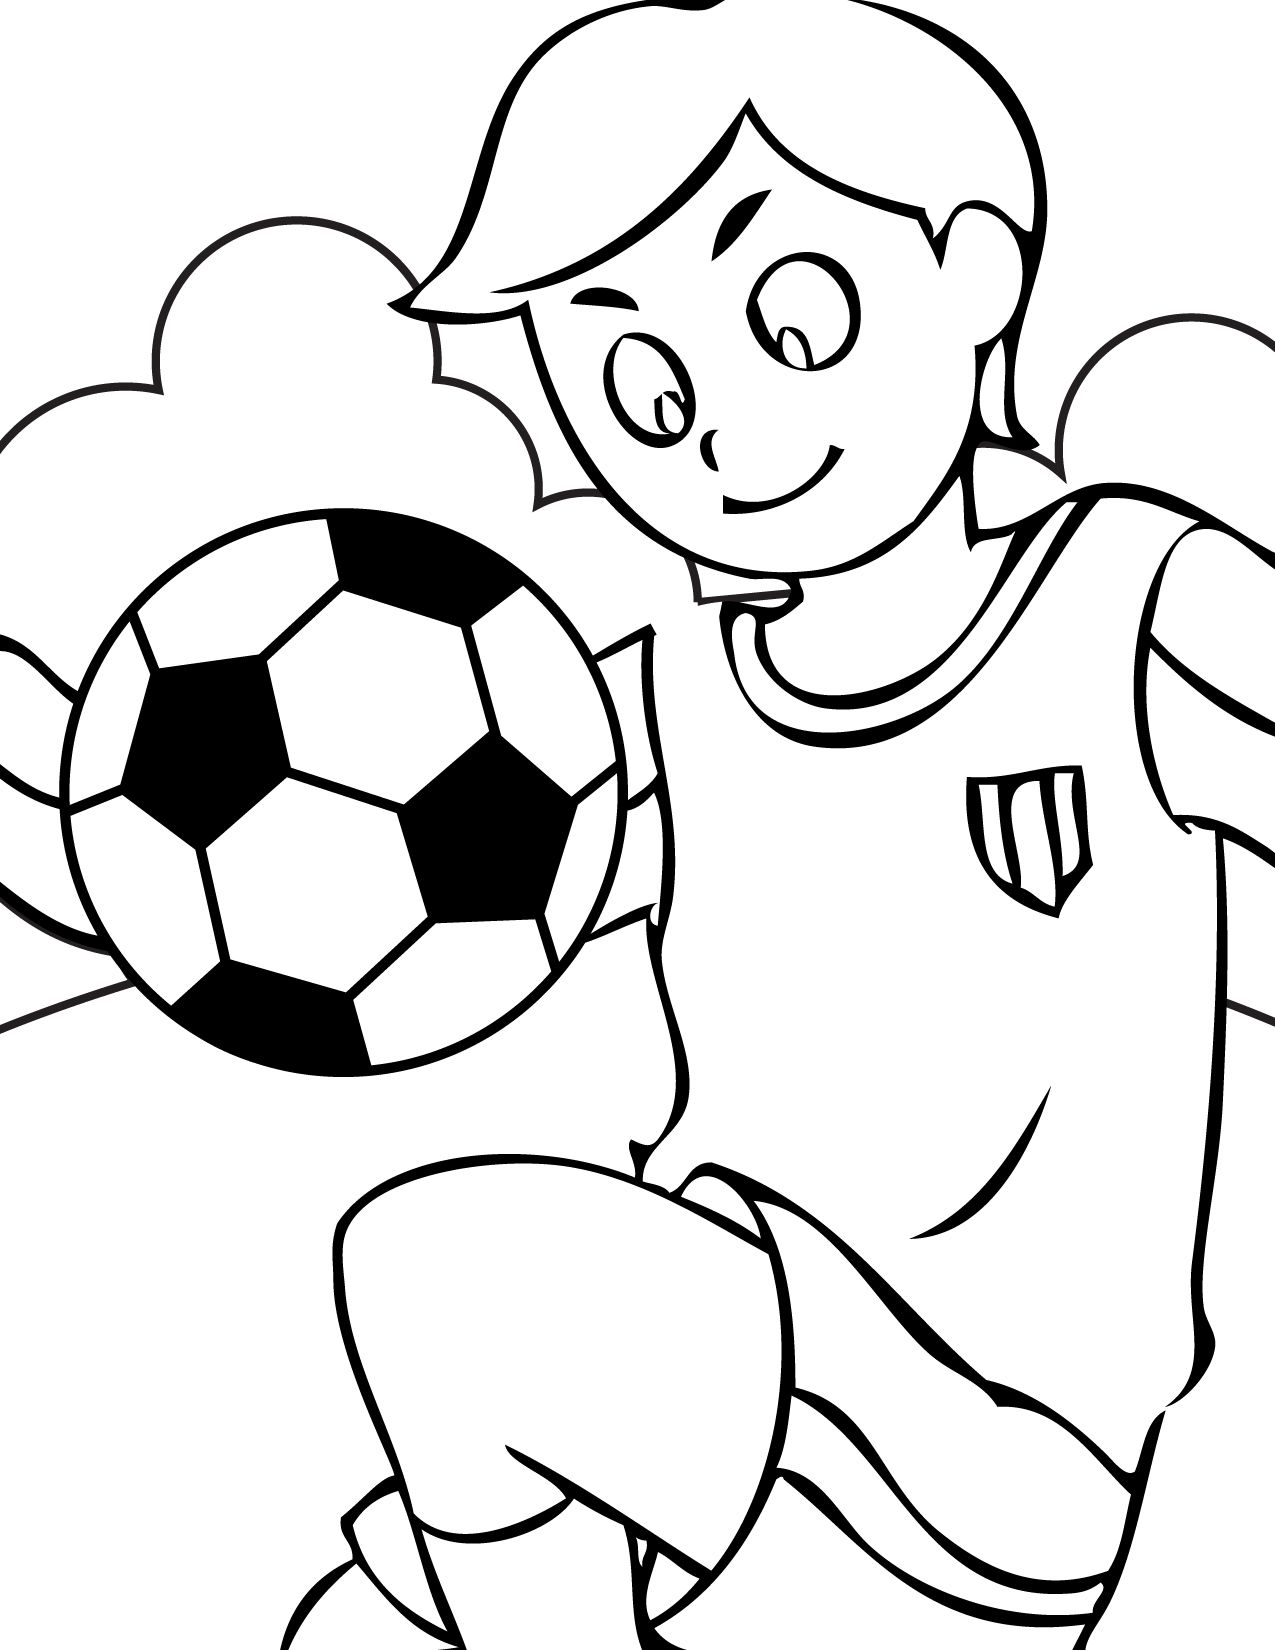 Soccer Coloring Pages Free Printable - Free Coloring Pages